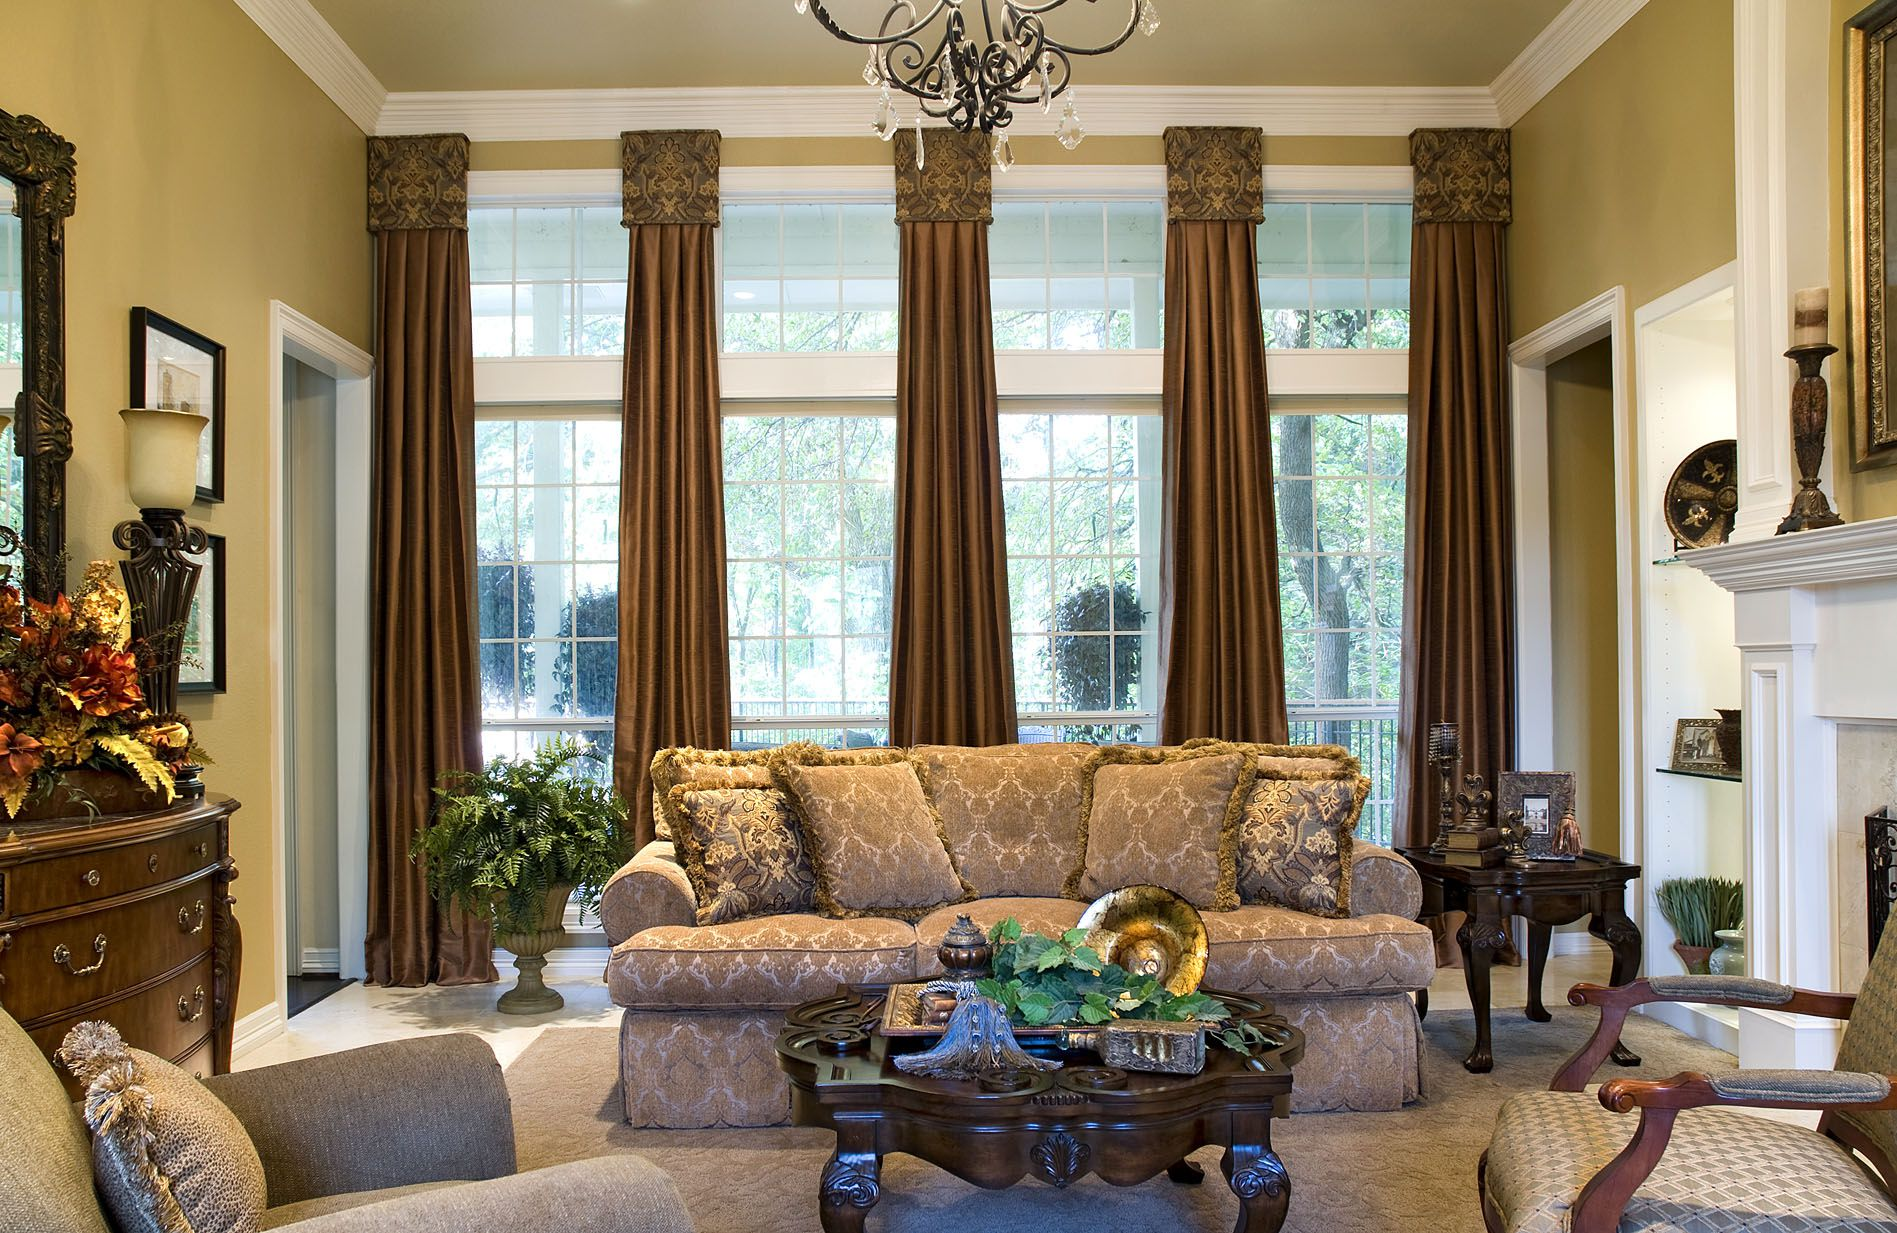 Attractive Living Space Using Brown Window Curtain and Modern Furniture